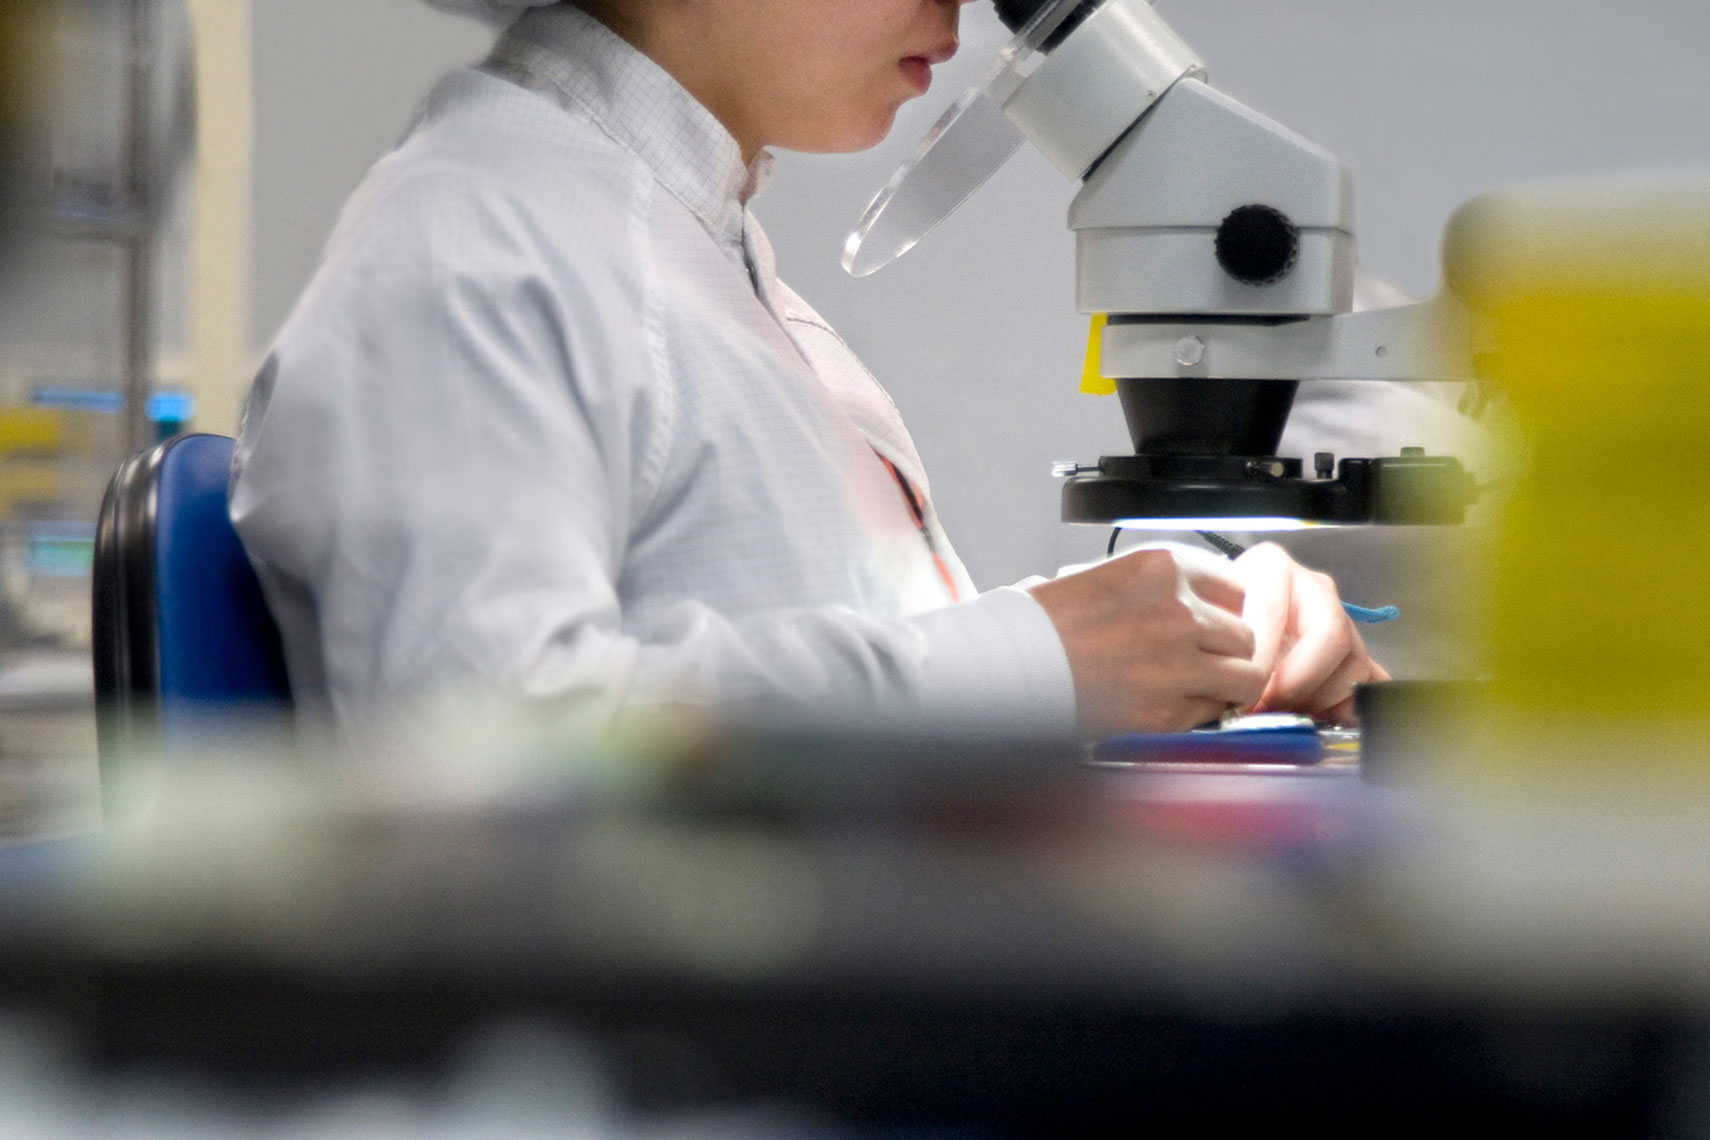 Environmental-portrait-photograph-of-electronics-manufacturing-clean-room-worker-examines-circuitry-under-microscope